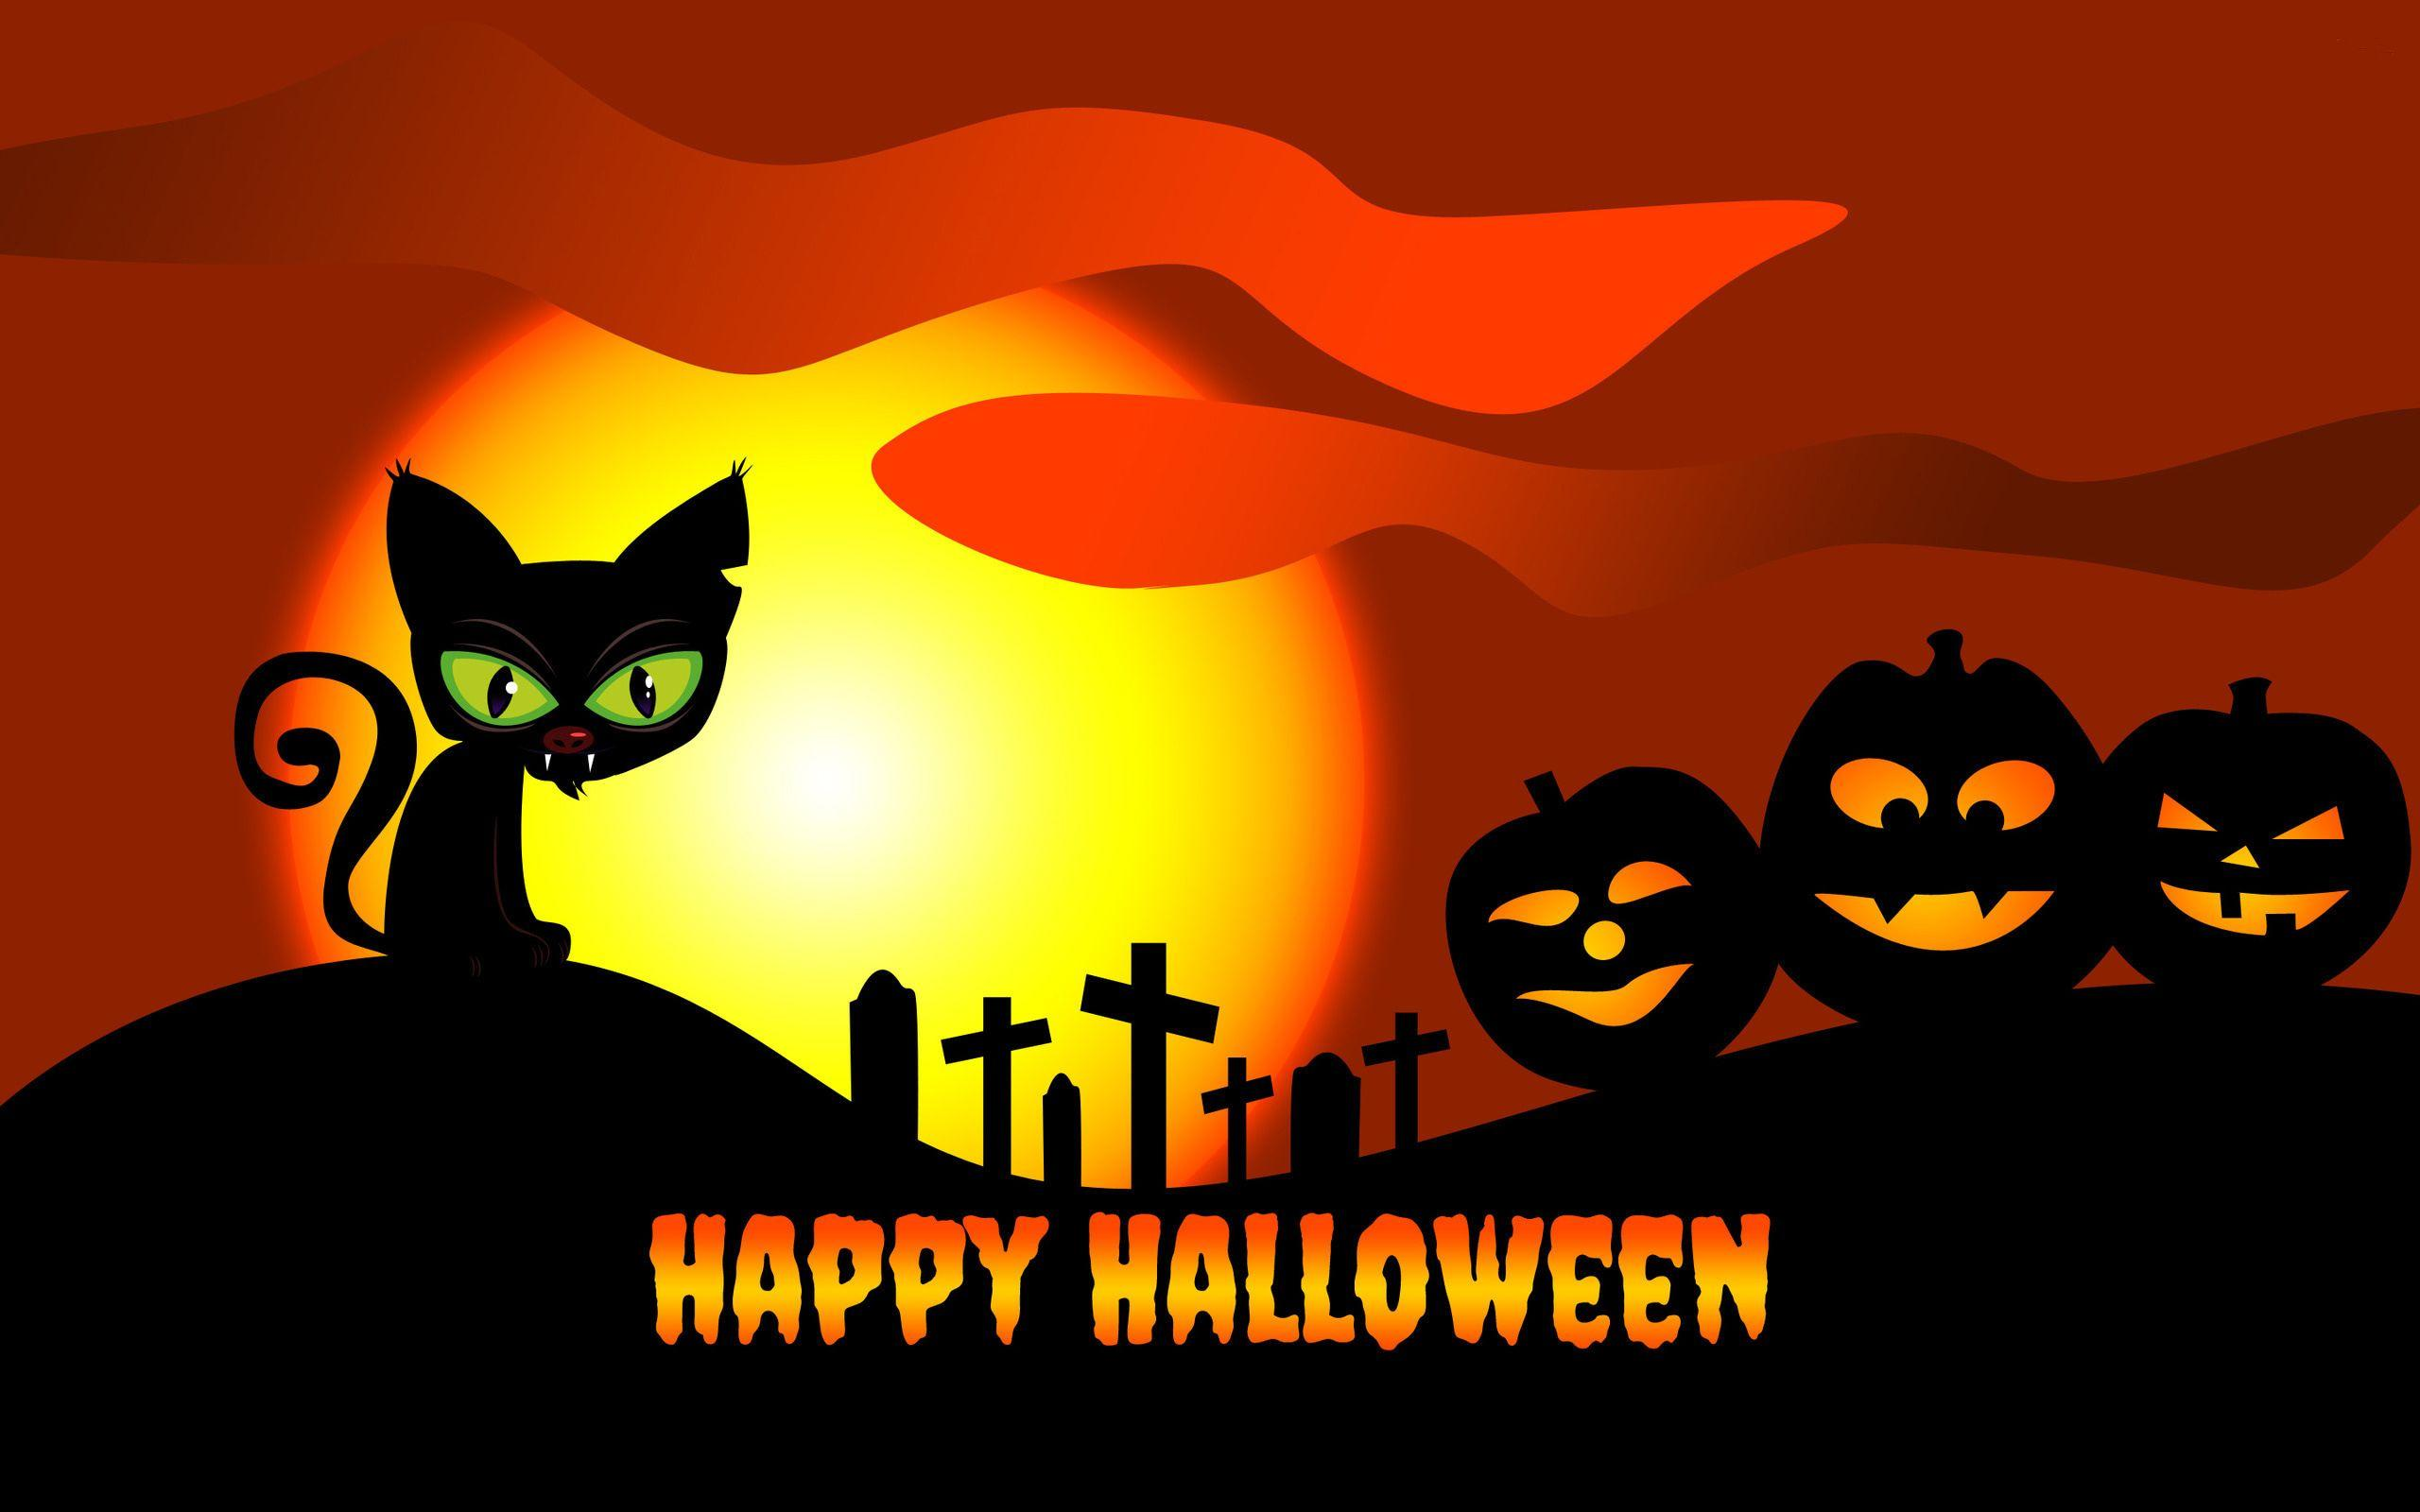 Halloween wallpaper 2017 - Happy Halloween Pictures 2017